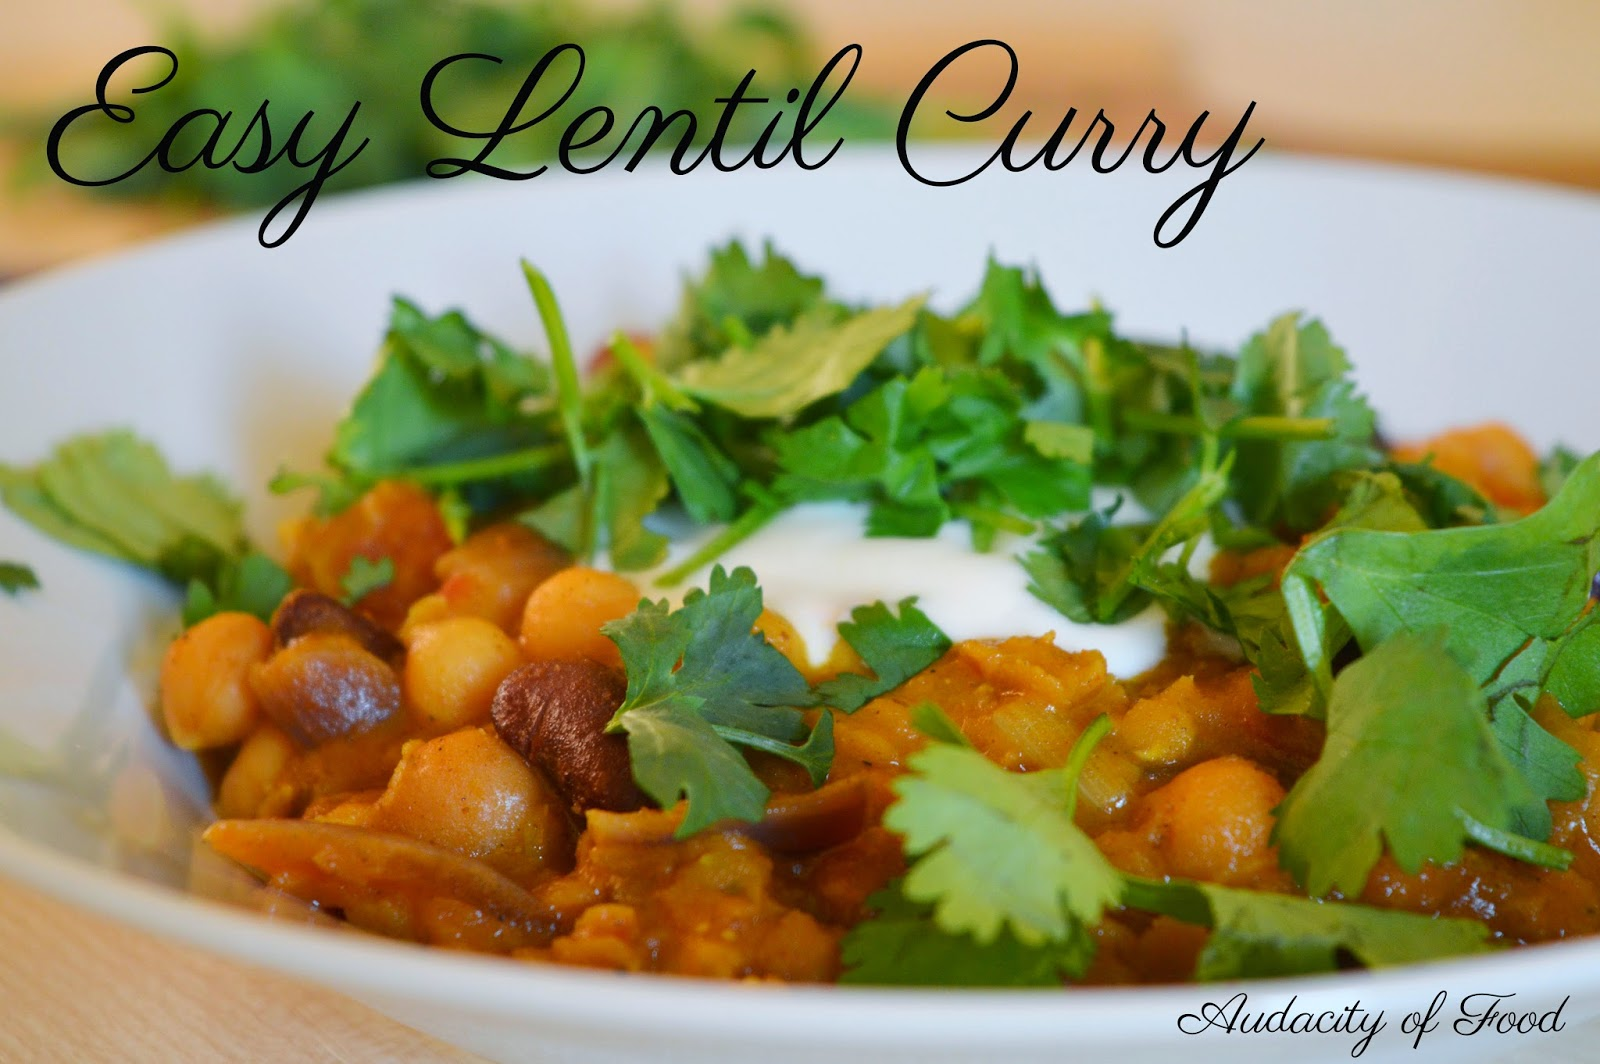 Easy Lentil Curry Recipe (Vegan) by Audacity of Food